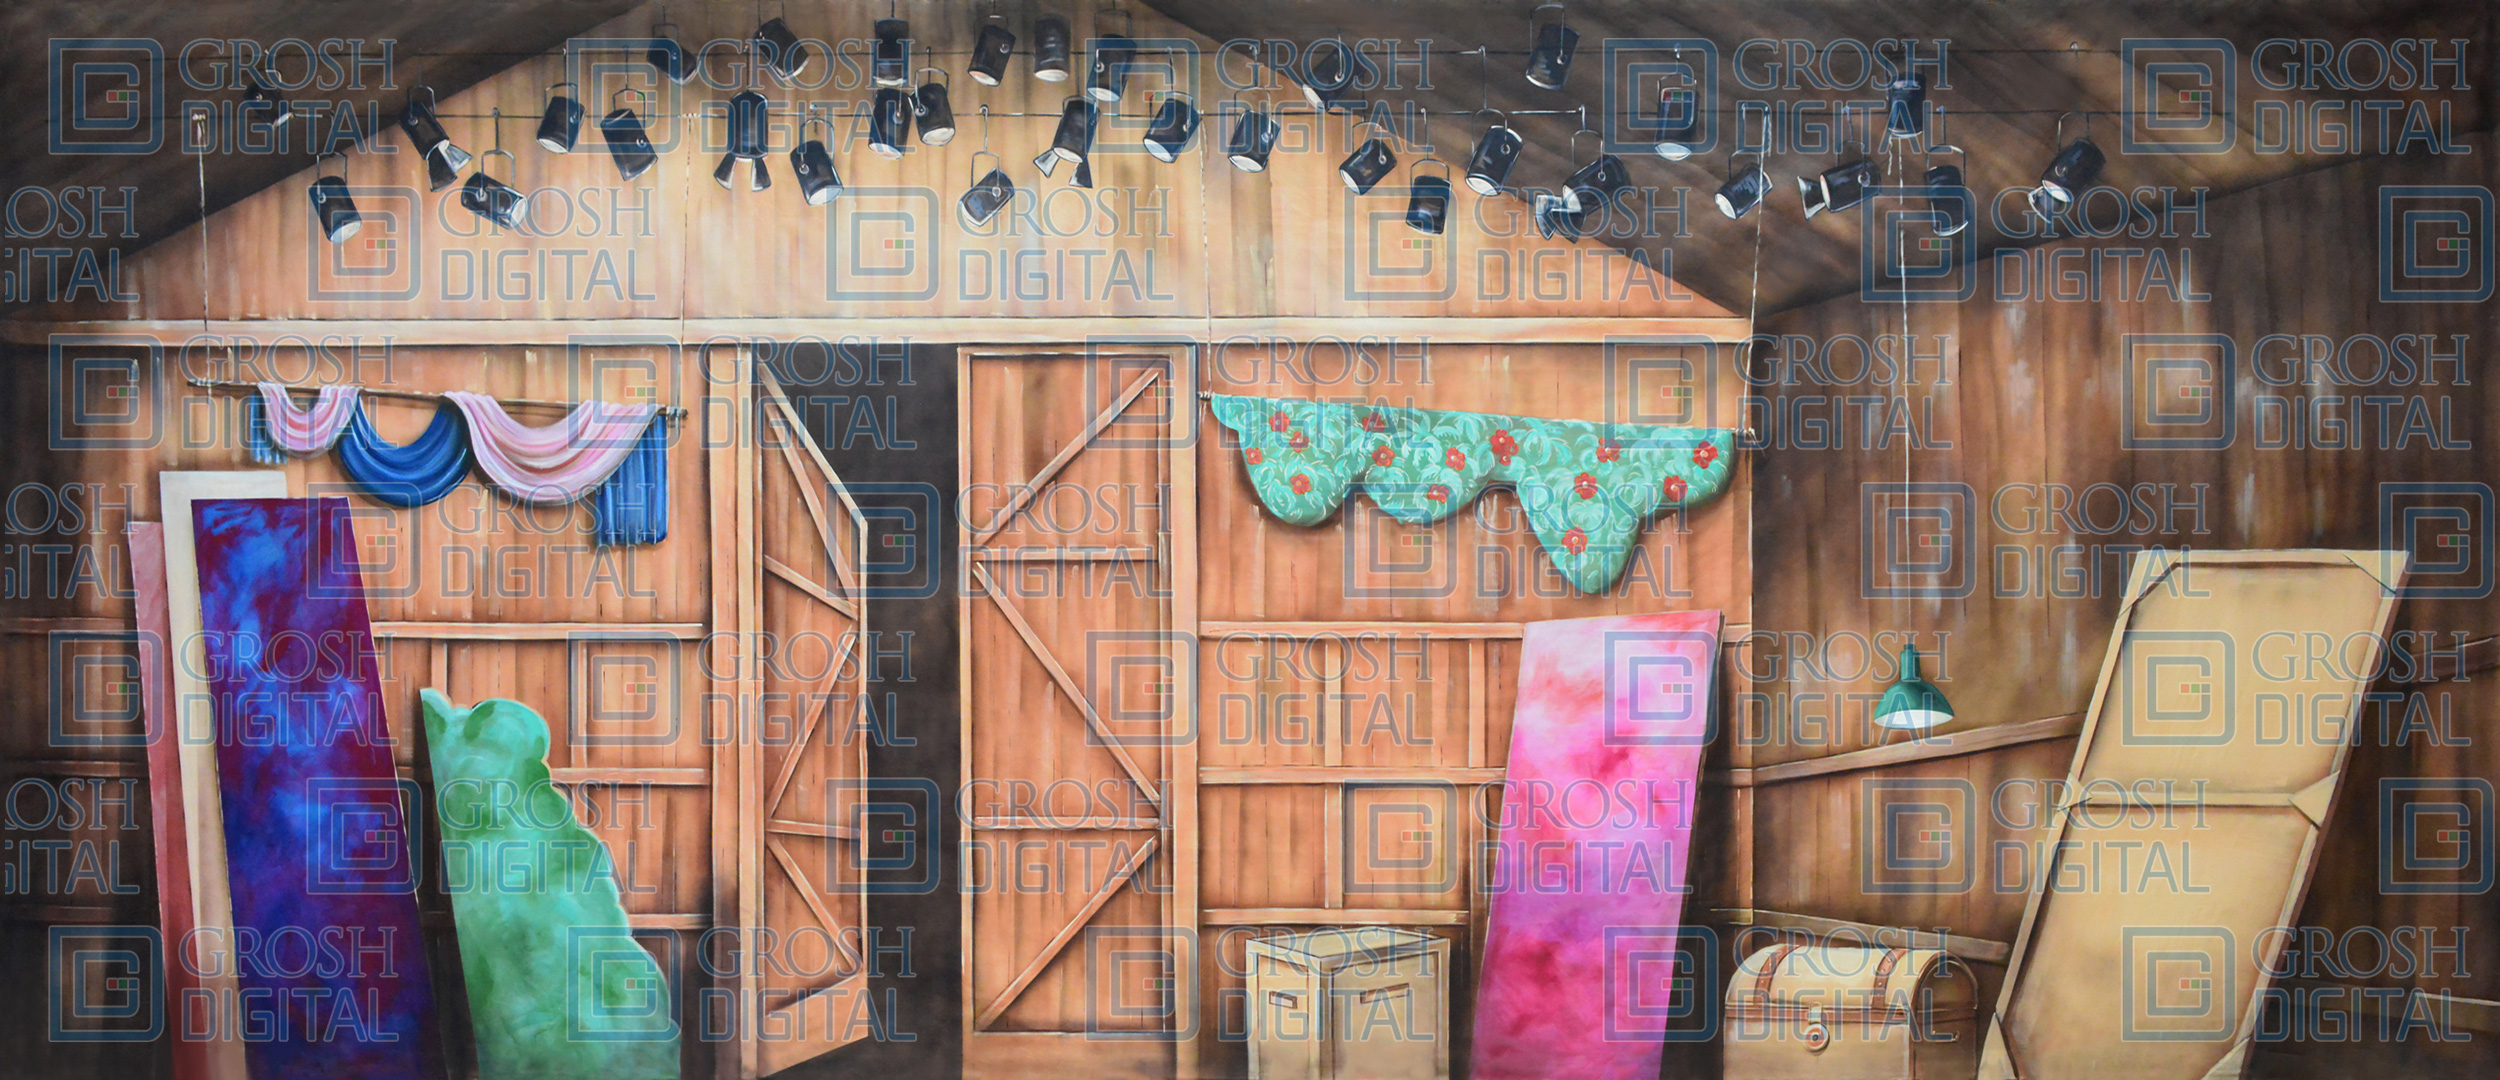 Barn Theater Interior Projected Backdrop for Crazy for You, Footloose, Interiors, My Fair Lady, Oklahoma